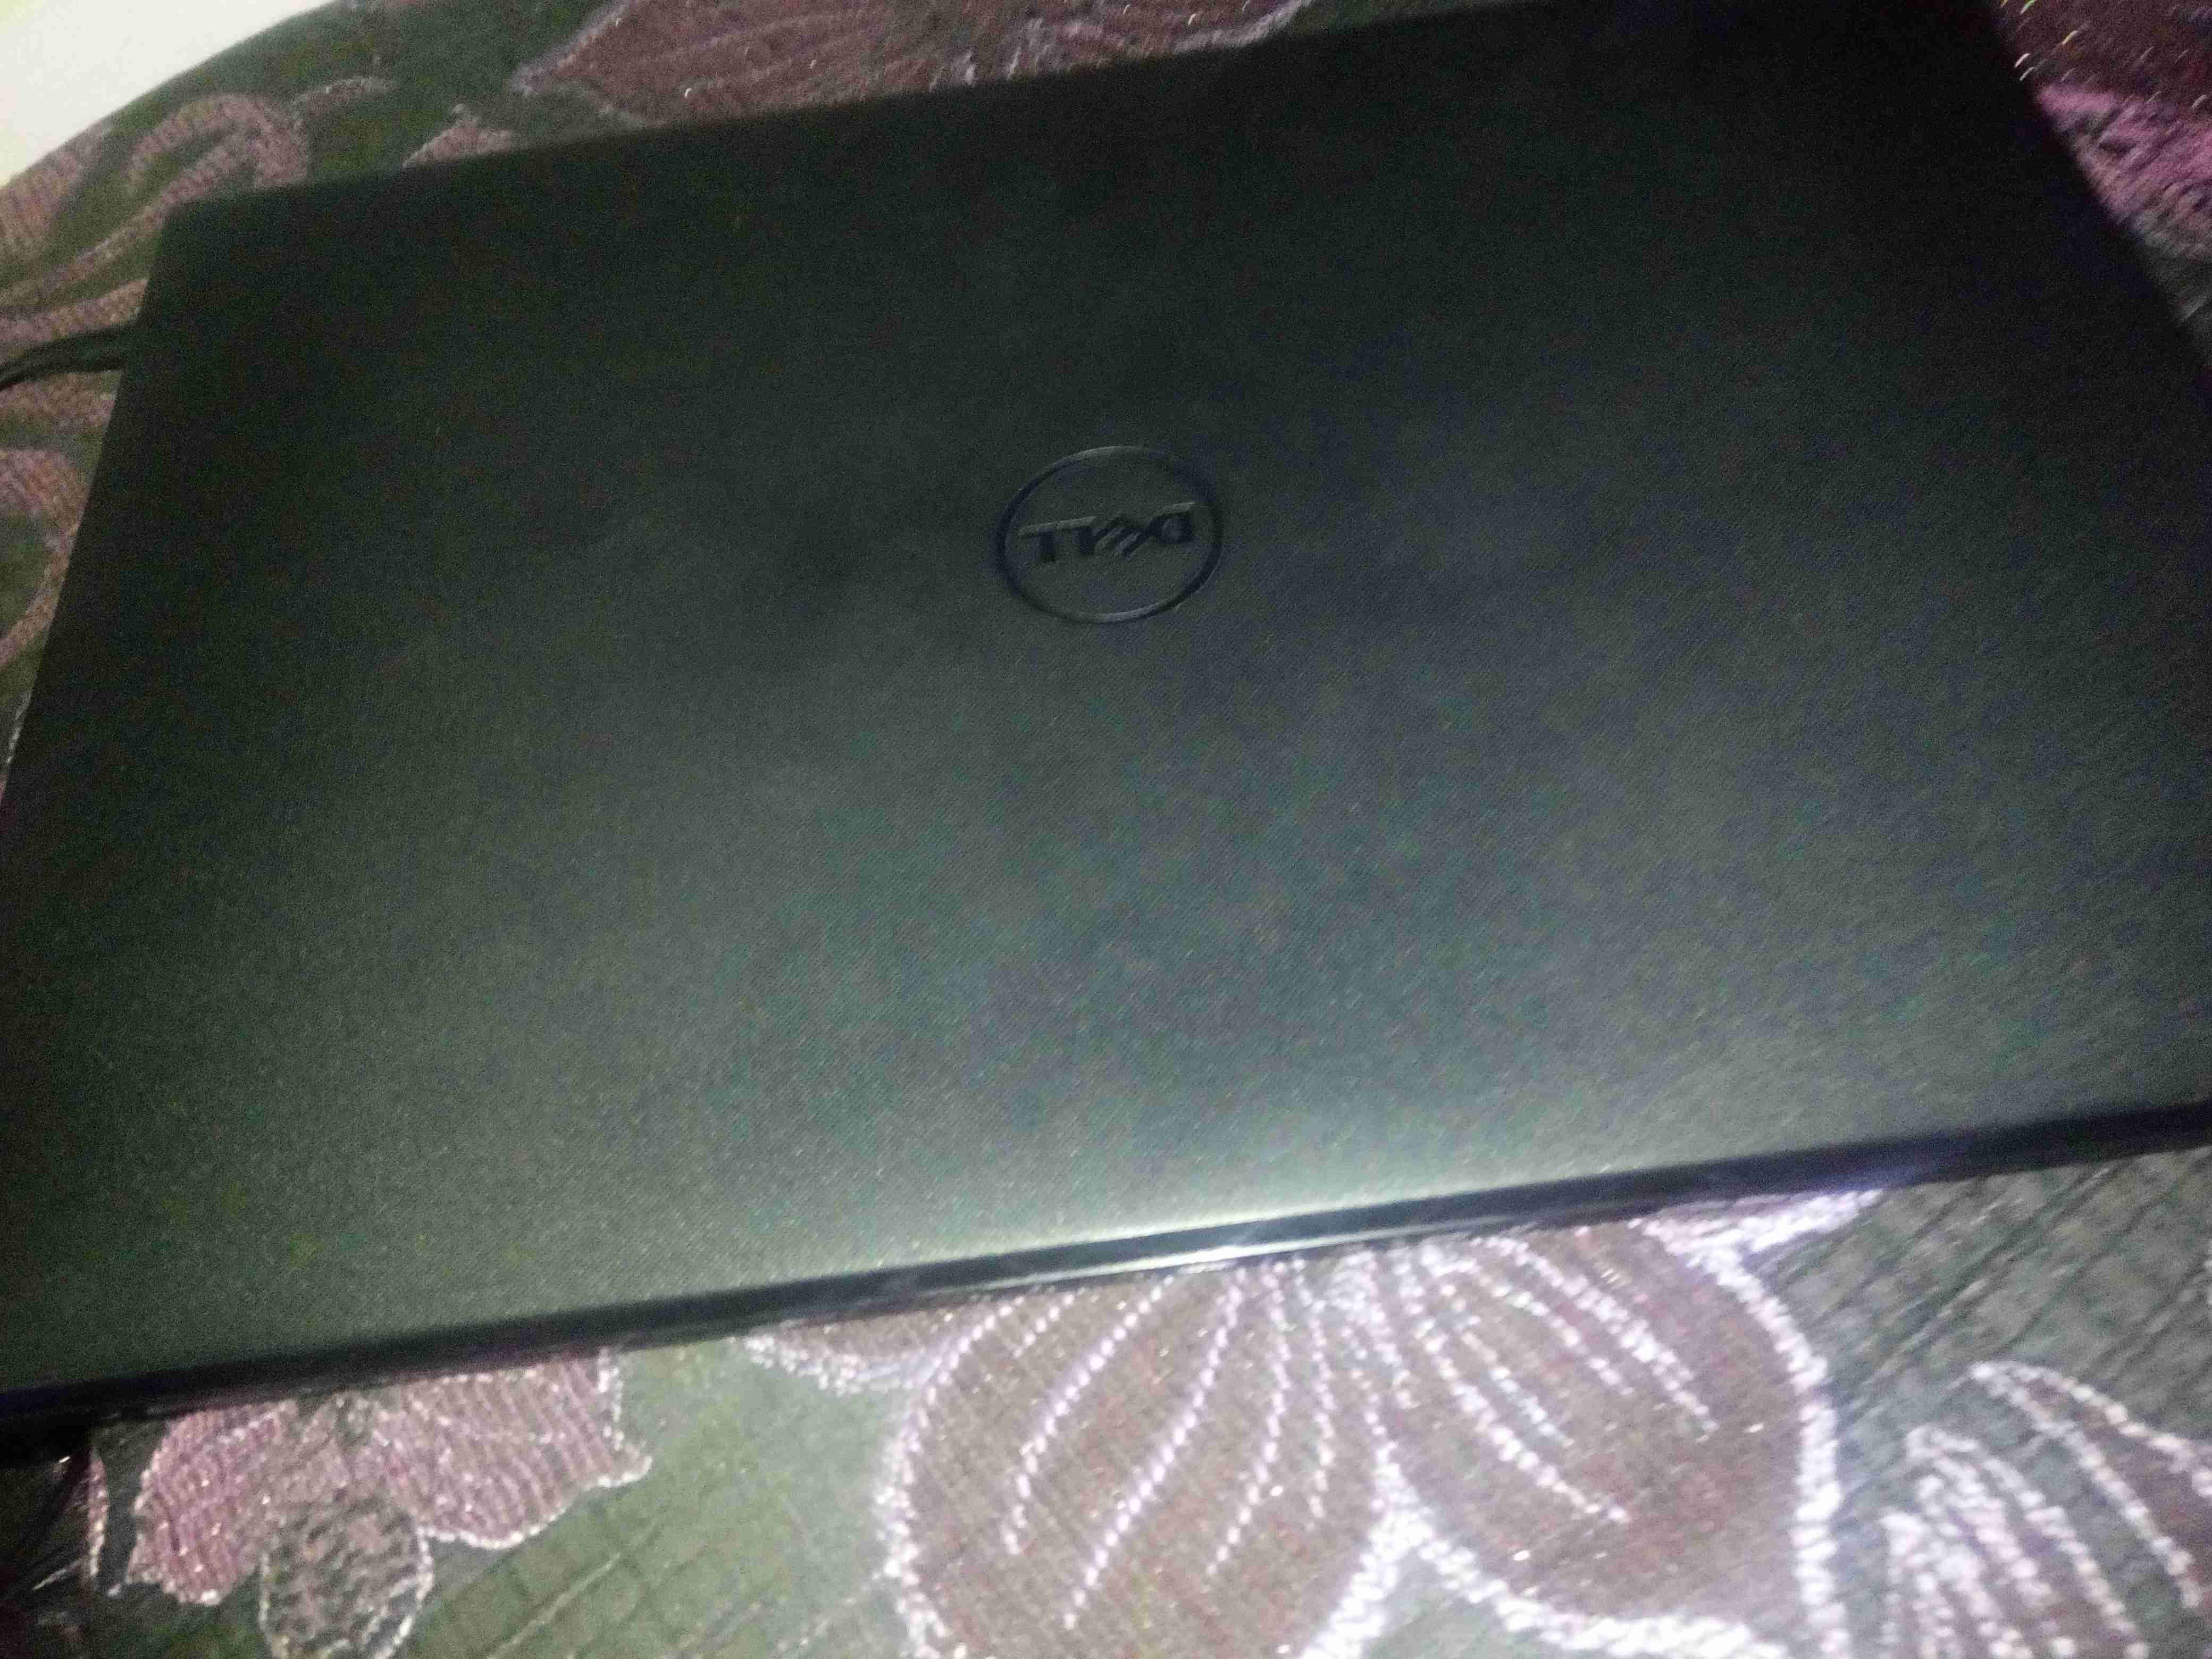 DELL ATG CORE i5 LAPTOP RARLEY USED IN GOOD WORKING CONDITION-  لابتوب ديل i5 لا تنسَ أنك...